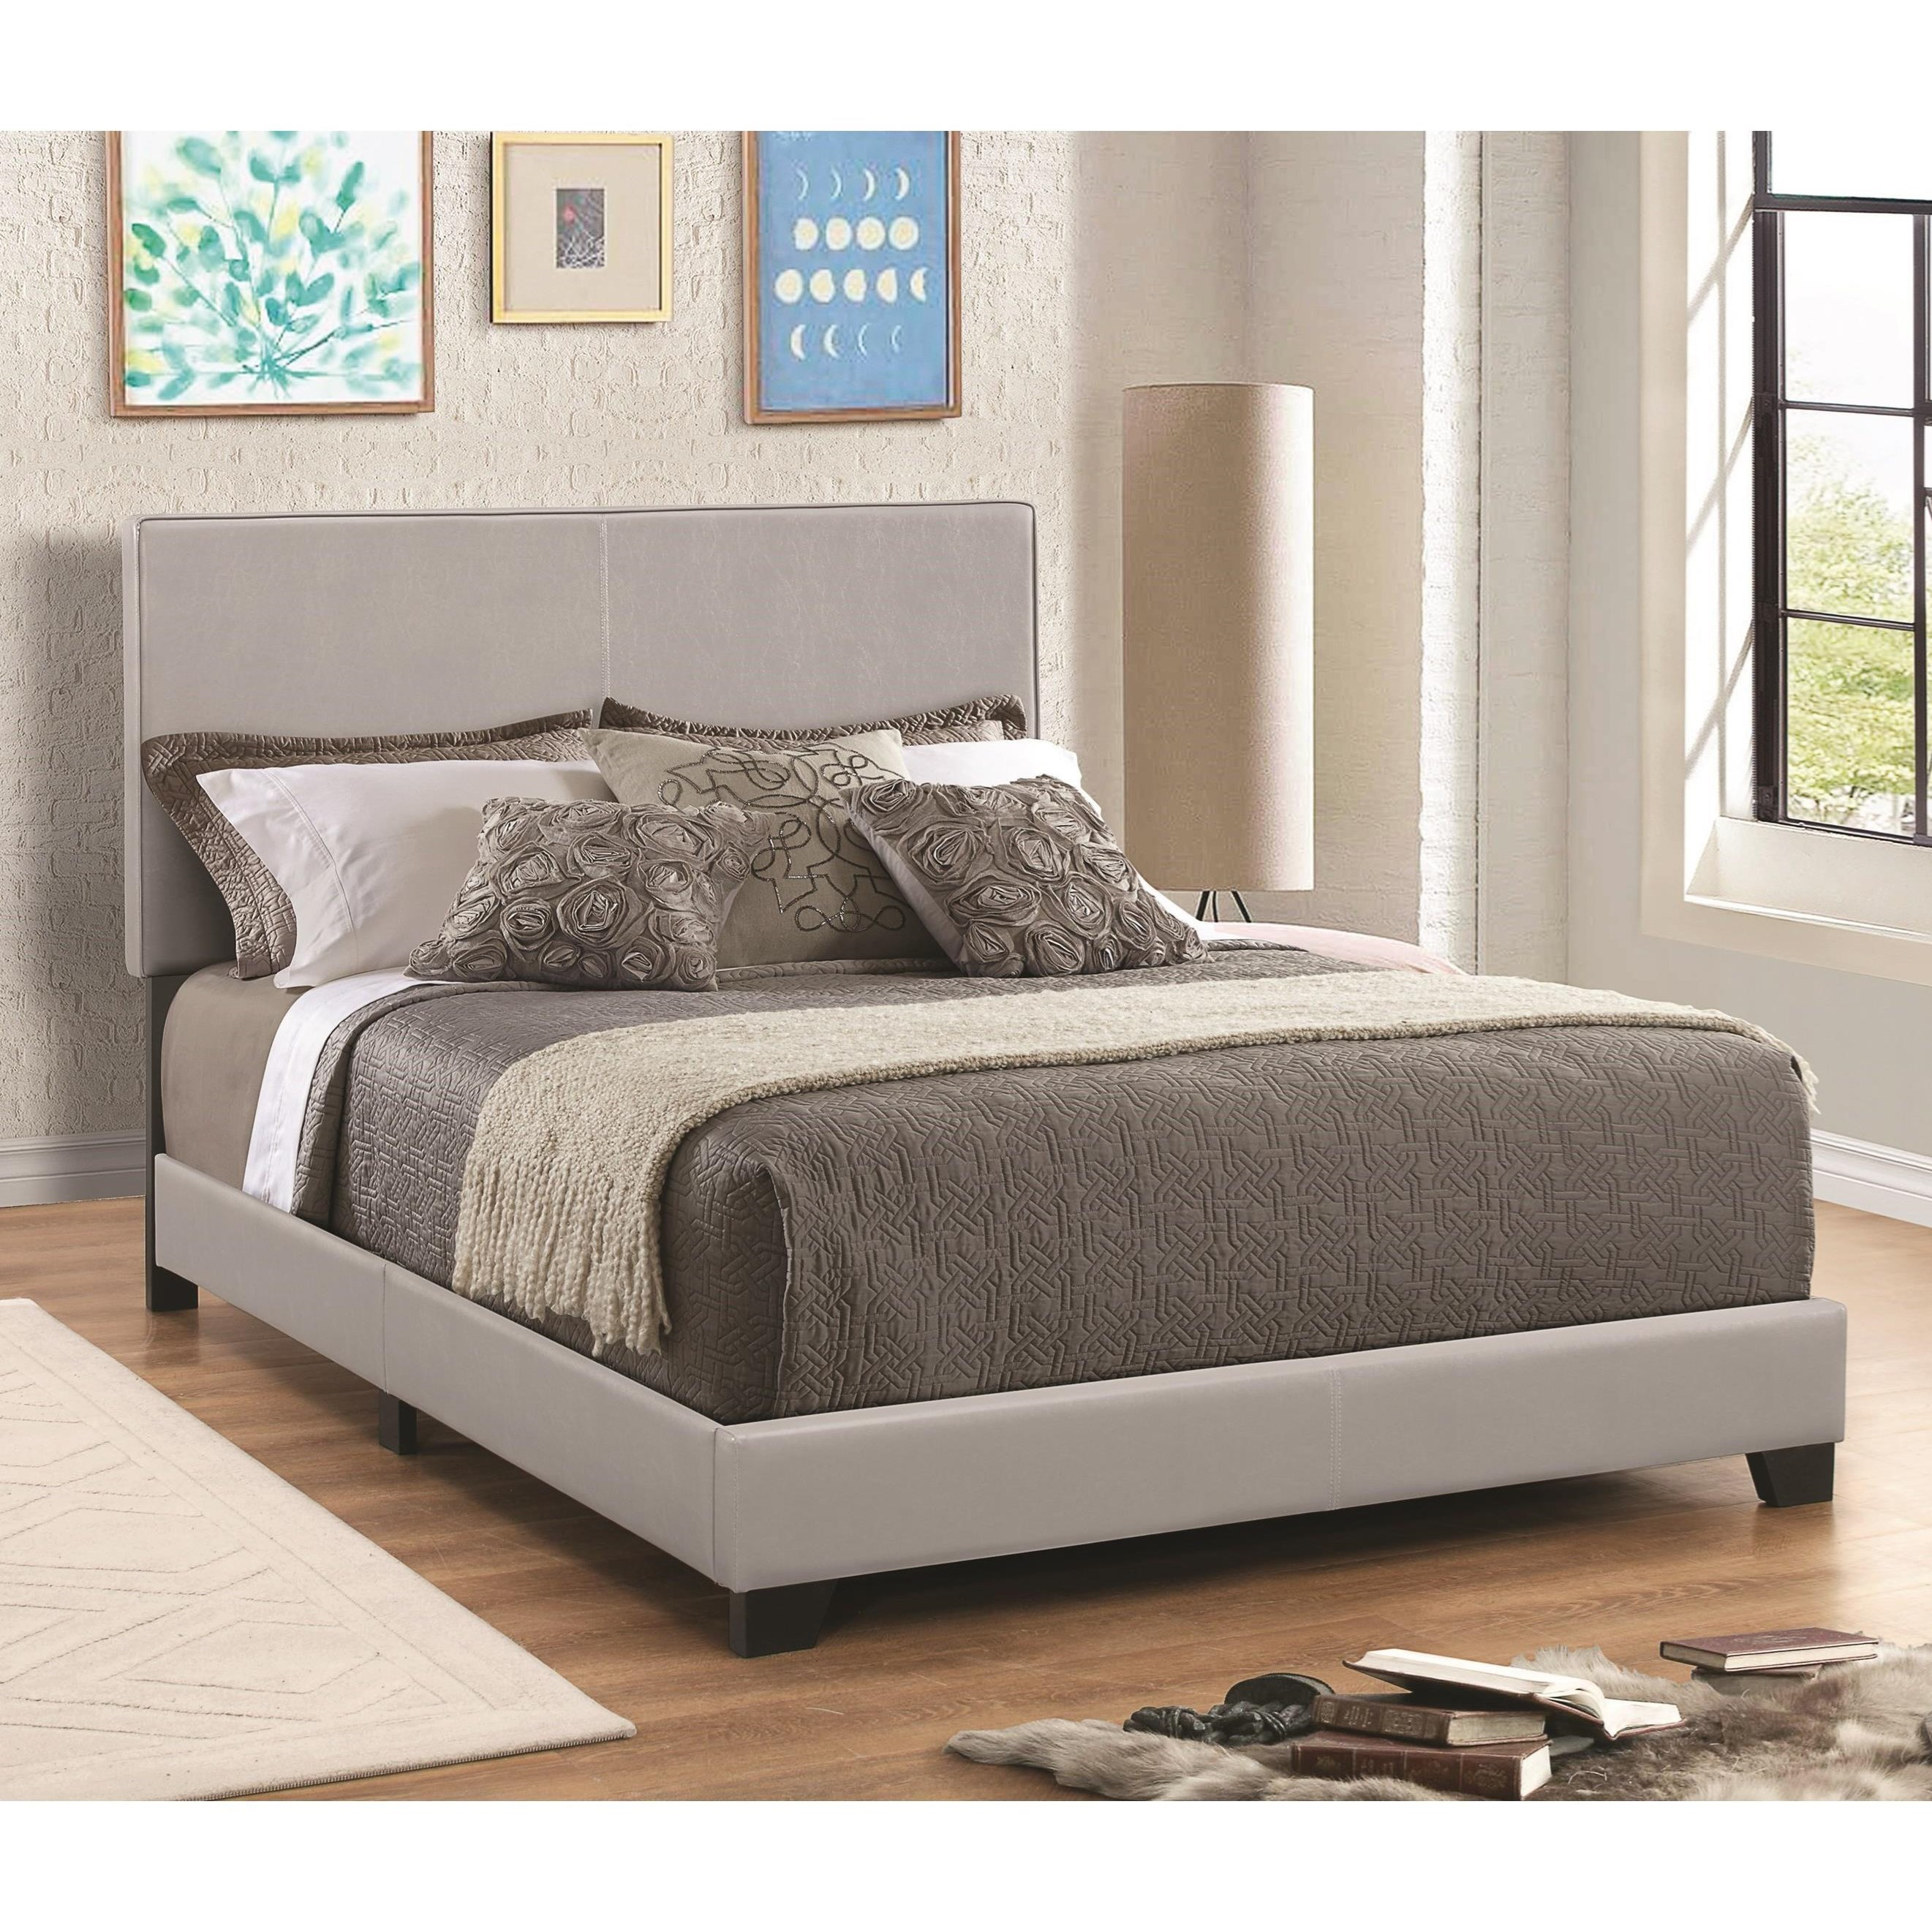 Dorian Grey Full Bed by Coaster at Northeast Factory Direct